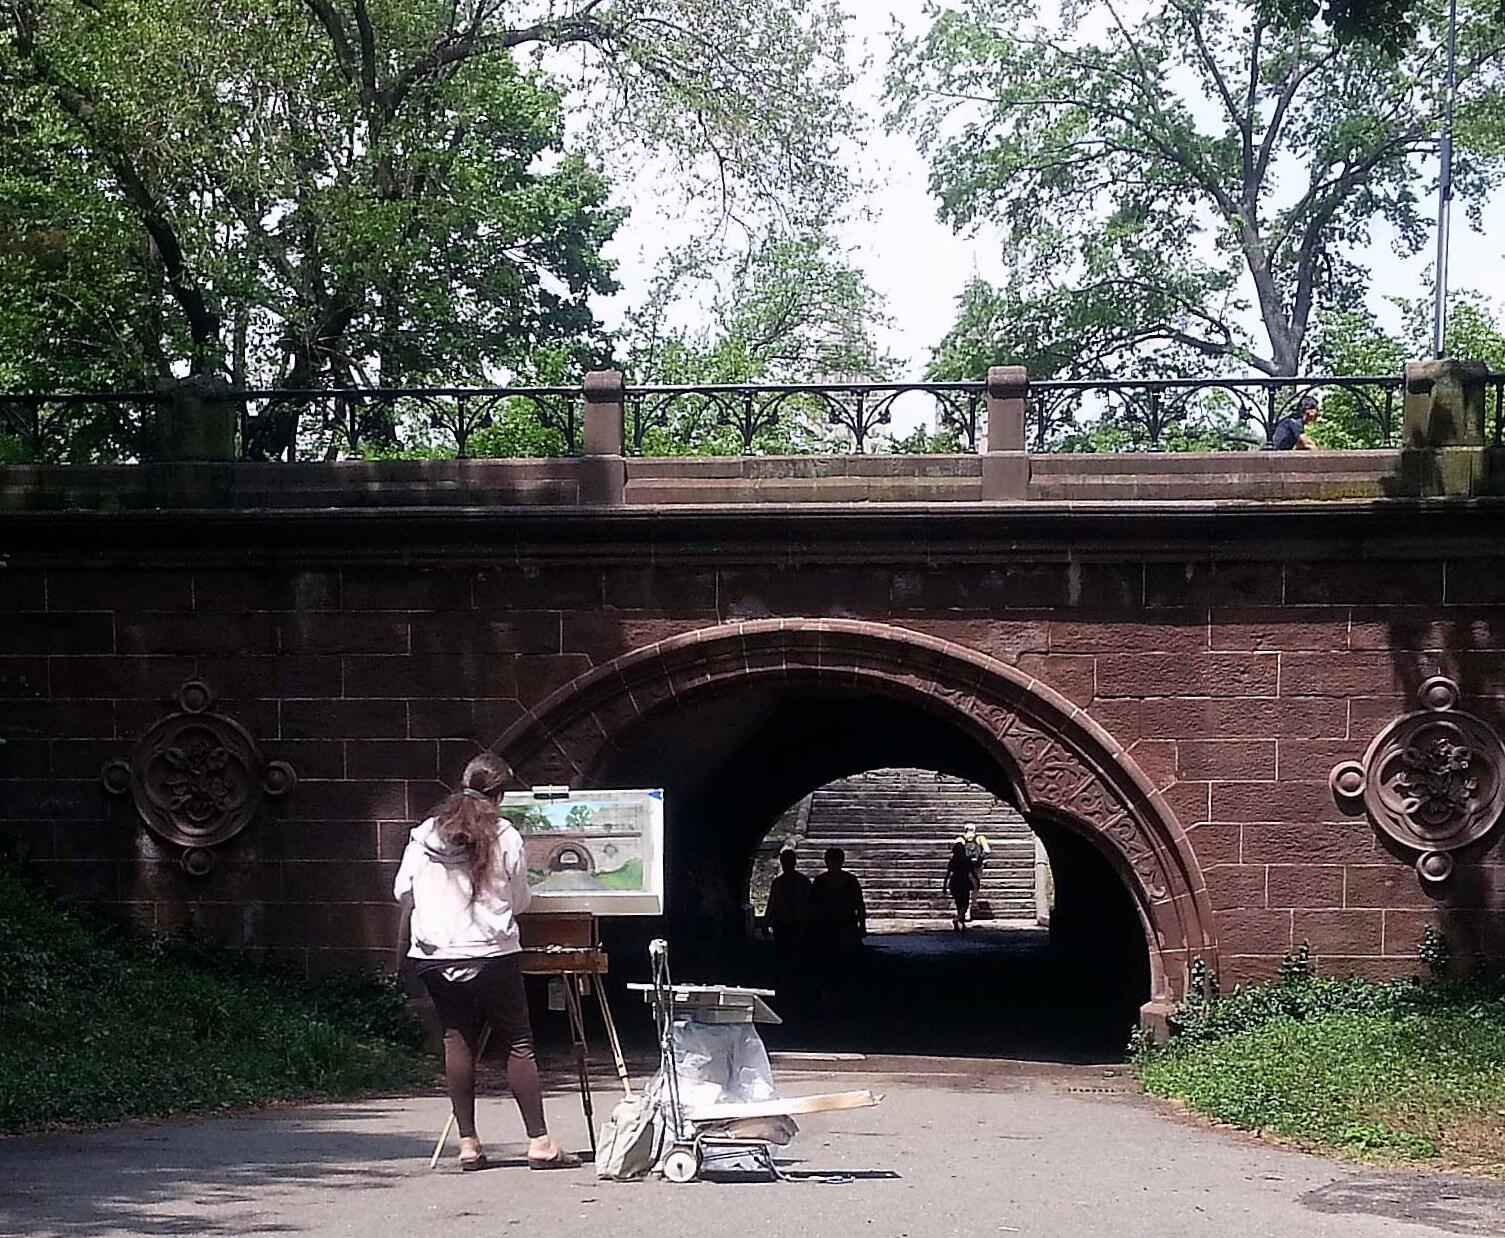 Twitter / My_Cen_ParkNYC: #Artists at work in #CentralPark ...